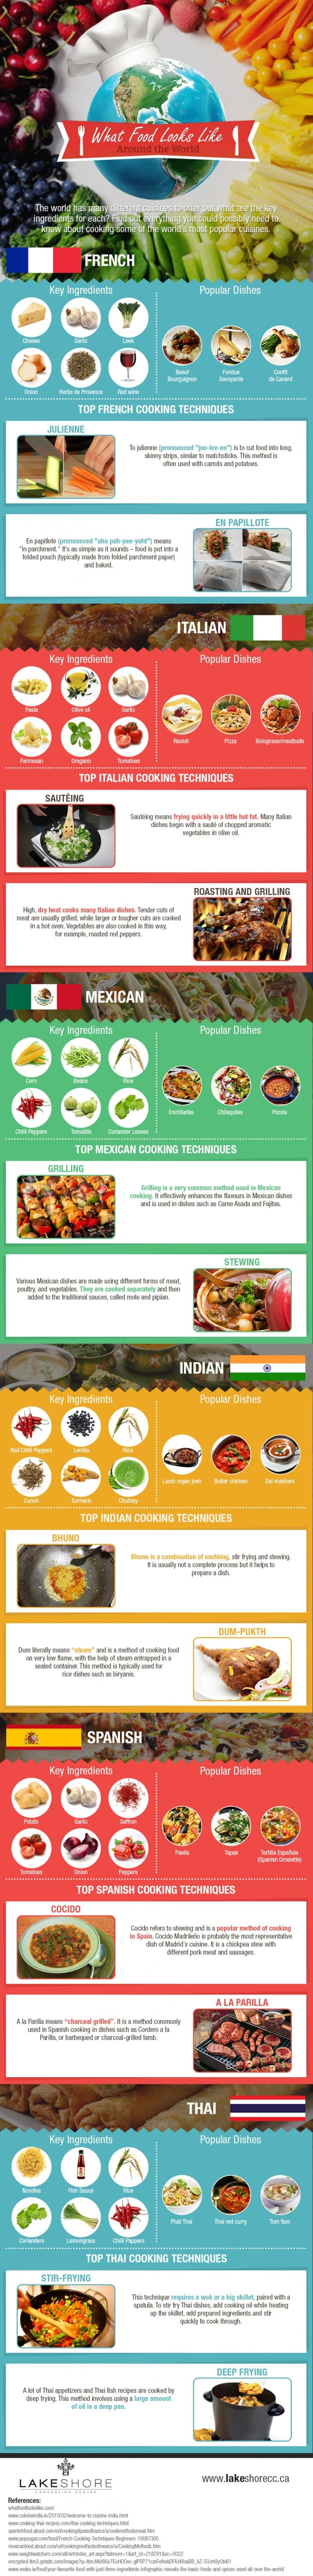 what-food-looks-like-around-the-world--infographic_54feee066f2e3_w694.jpg